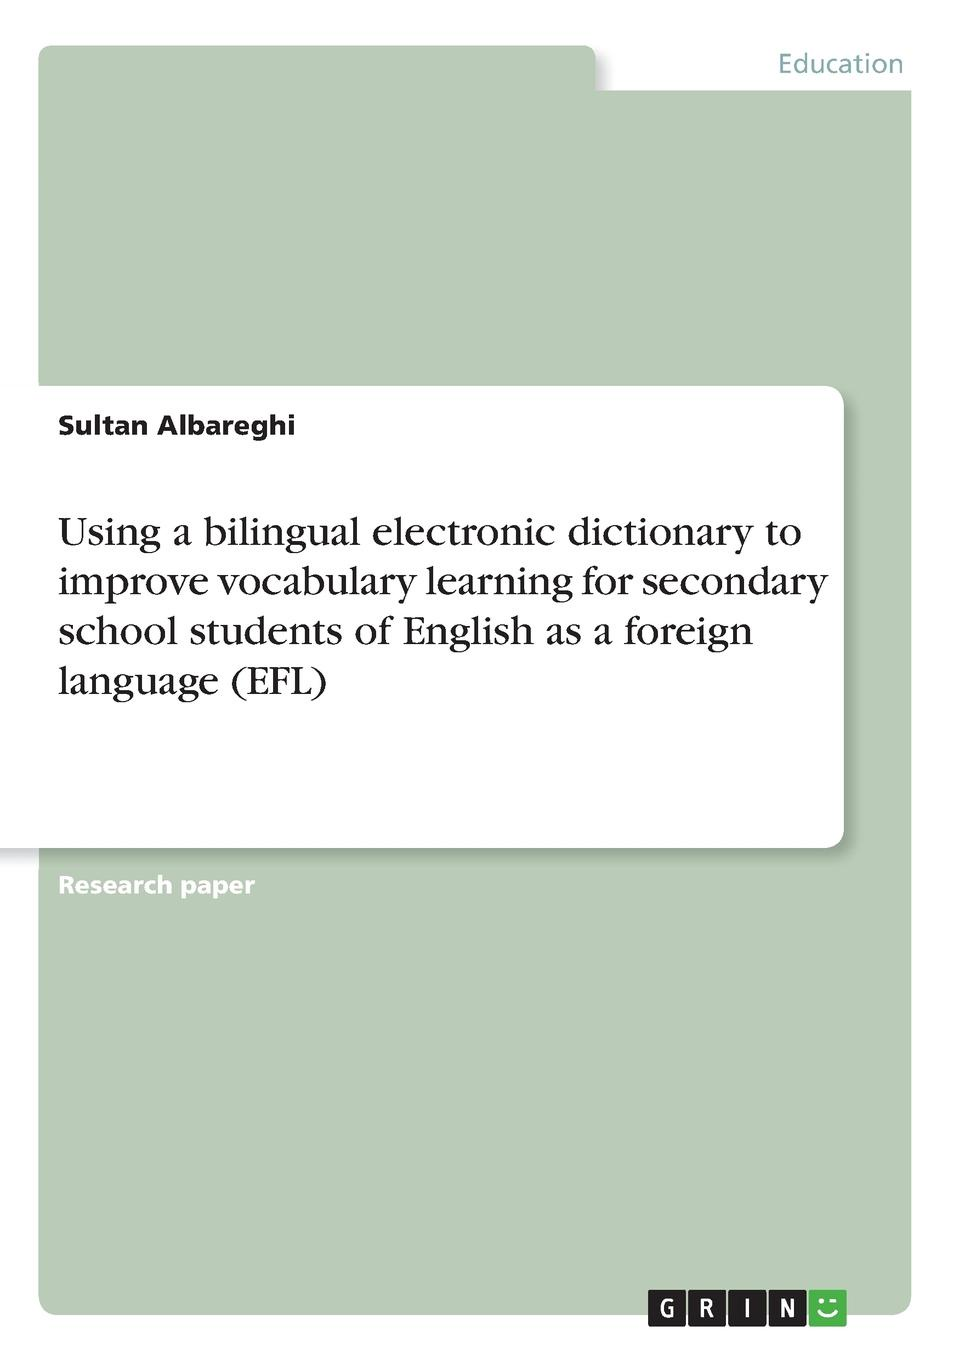 лучшая цена Sultan Albareghi Using a bilingual electronic dictionary to improve vocabulary learning for secondary school students of English as a foreign language (EFL)